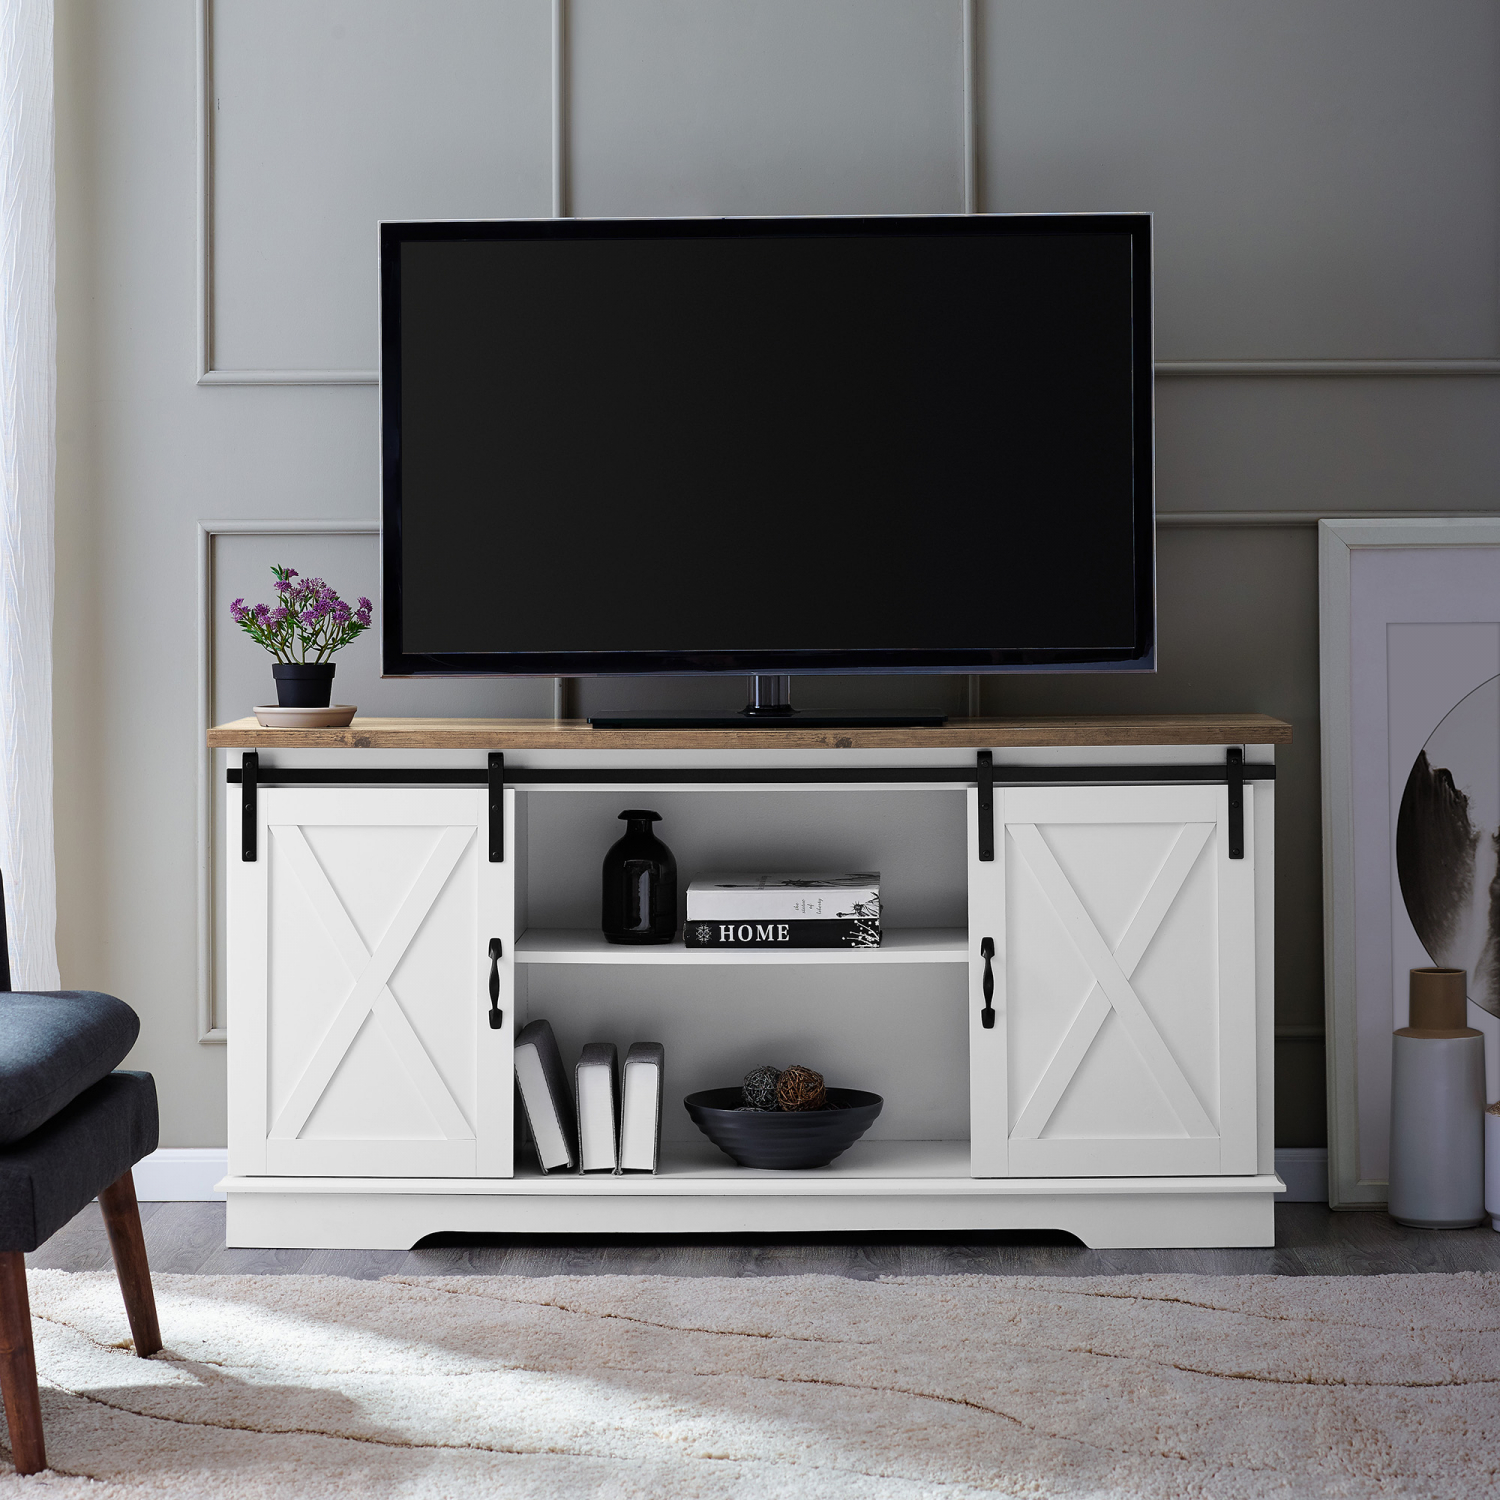 Rustic 58 Barn Door TV Stand Cosole Wall Unit Entertainment Center Fits 65 TVs